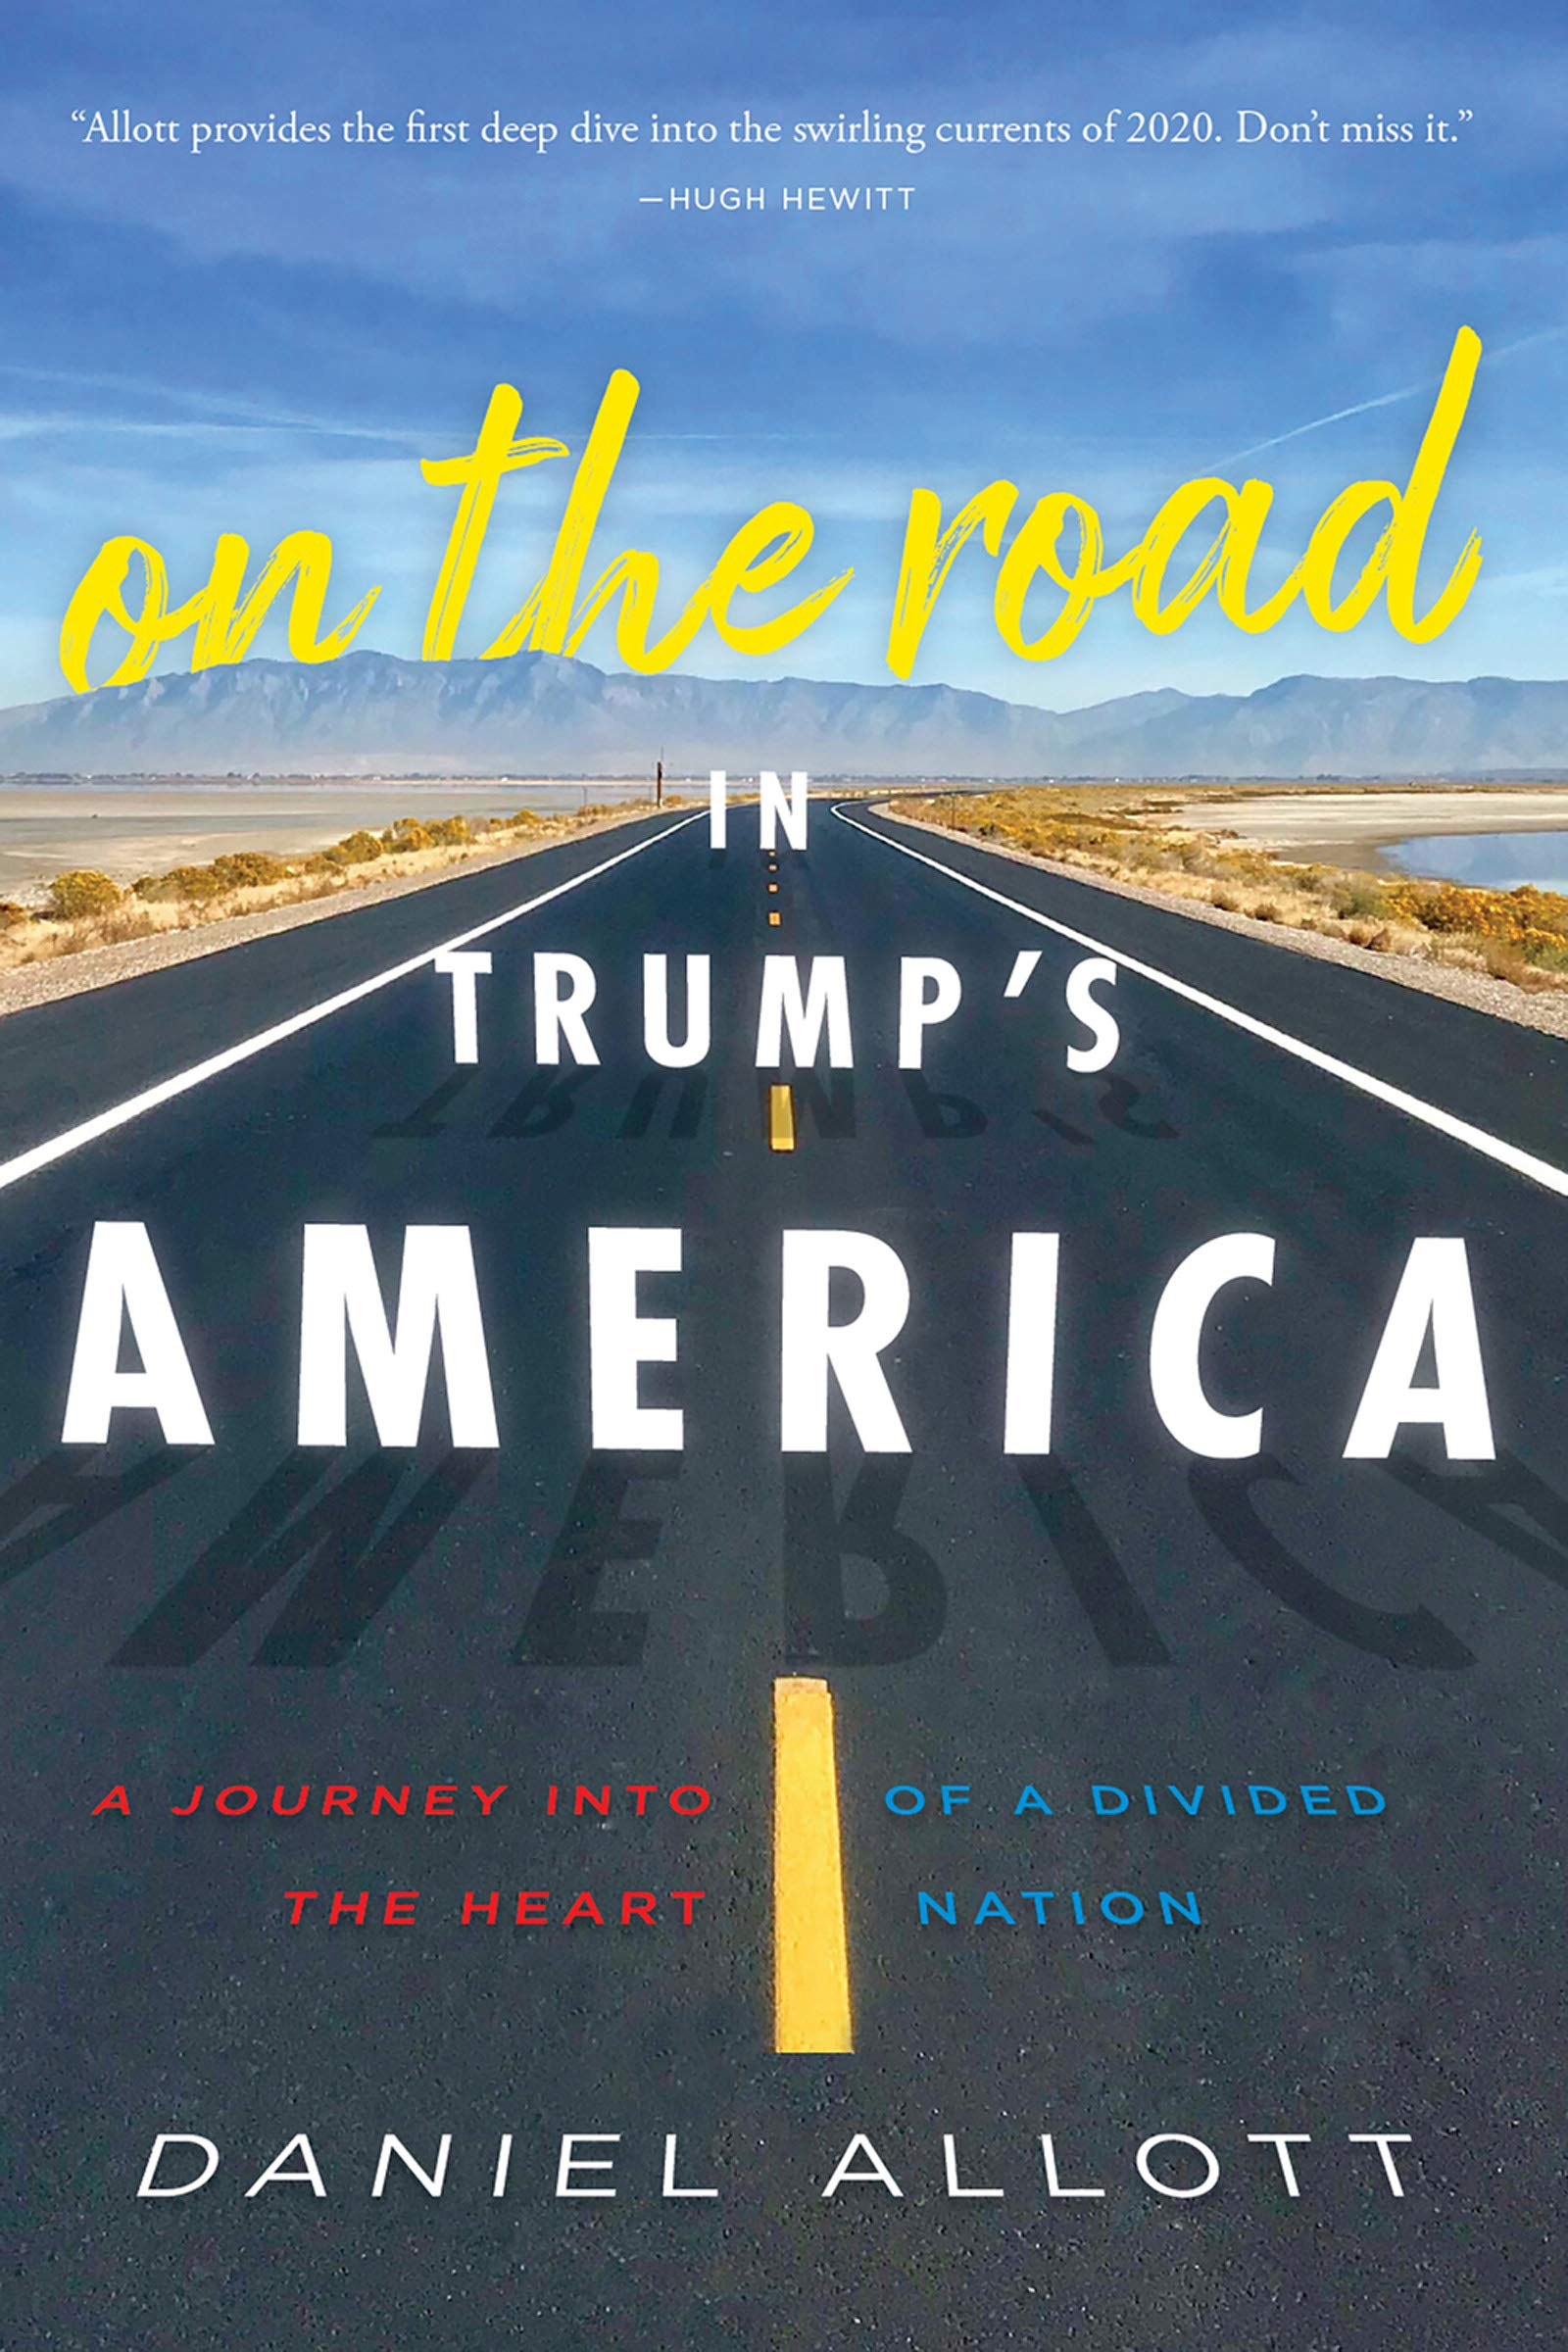 On the Road in Trump's America: A Journey Into the Heart of a Divided Nation